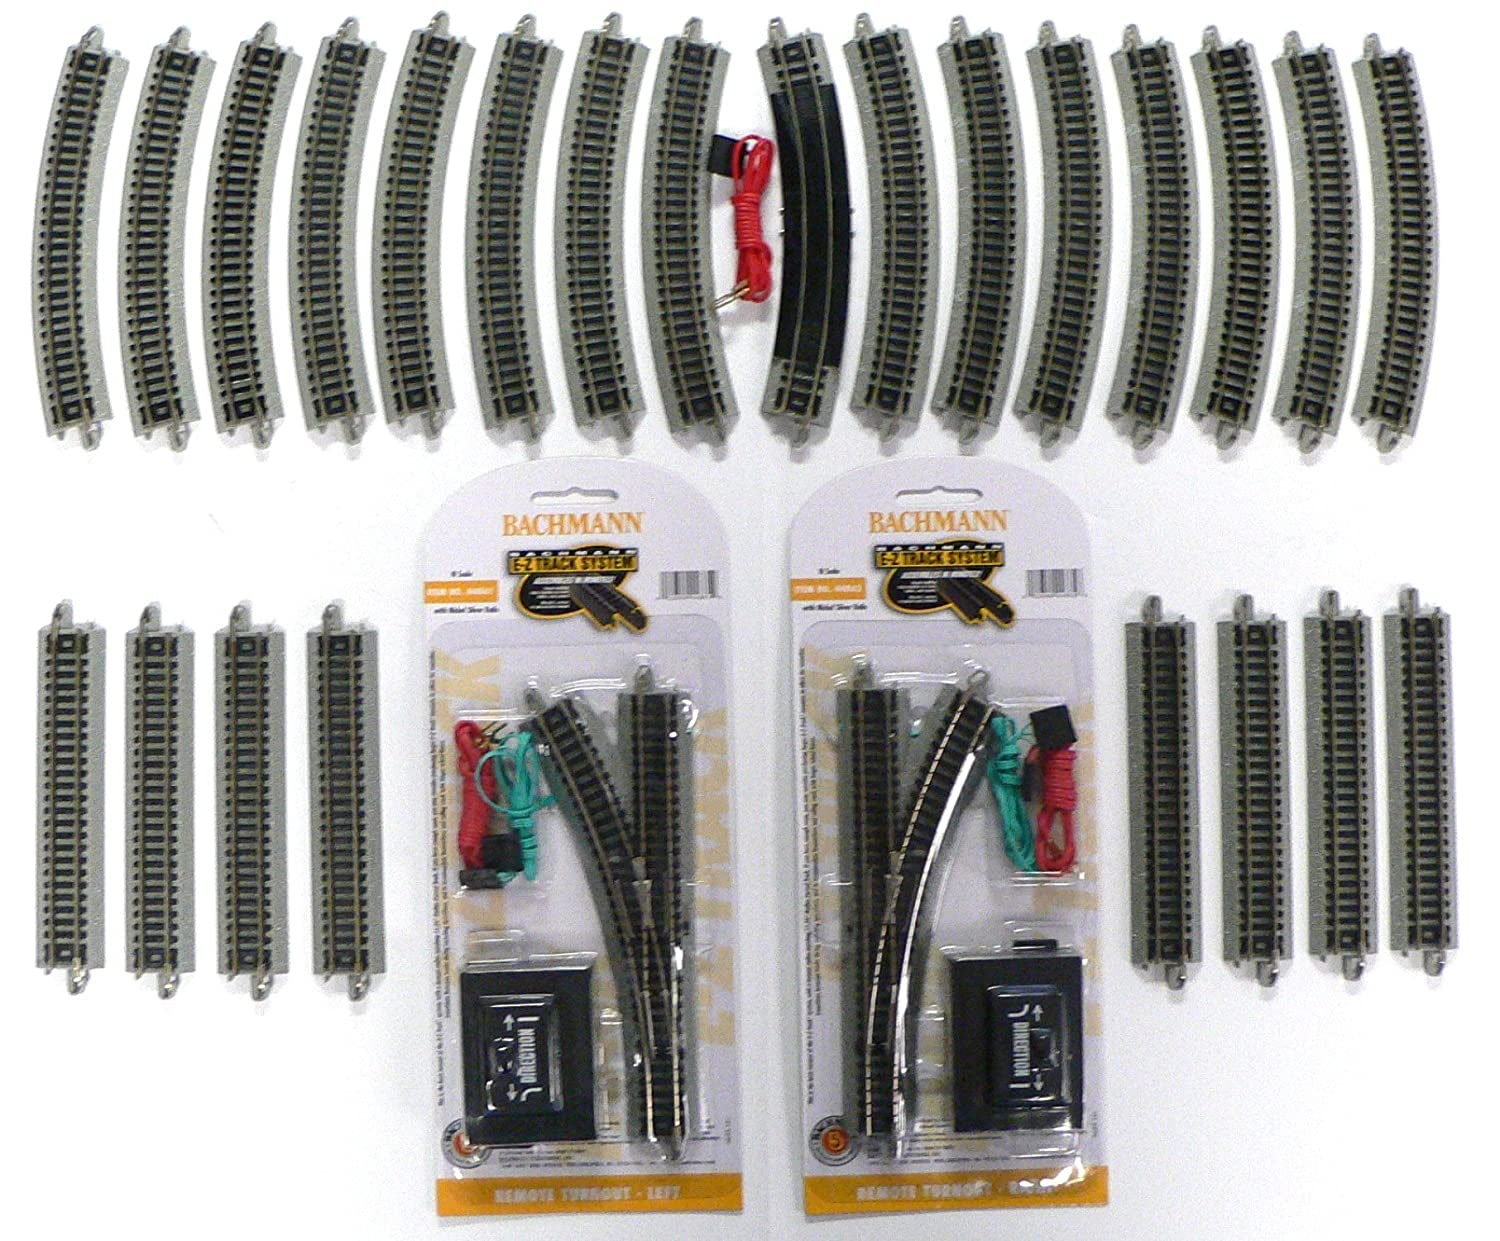 Amazon.com: N Scale Bachmann Nickel Silver EZ Track Pack for Model Railroad  Trains: Toys & Games